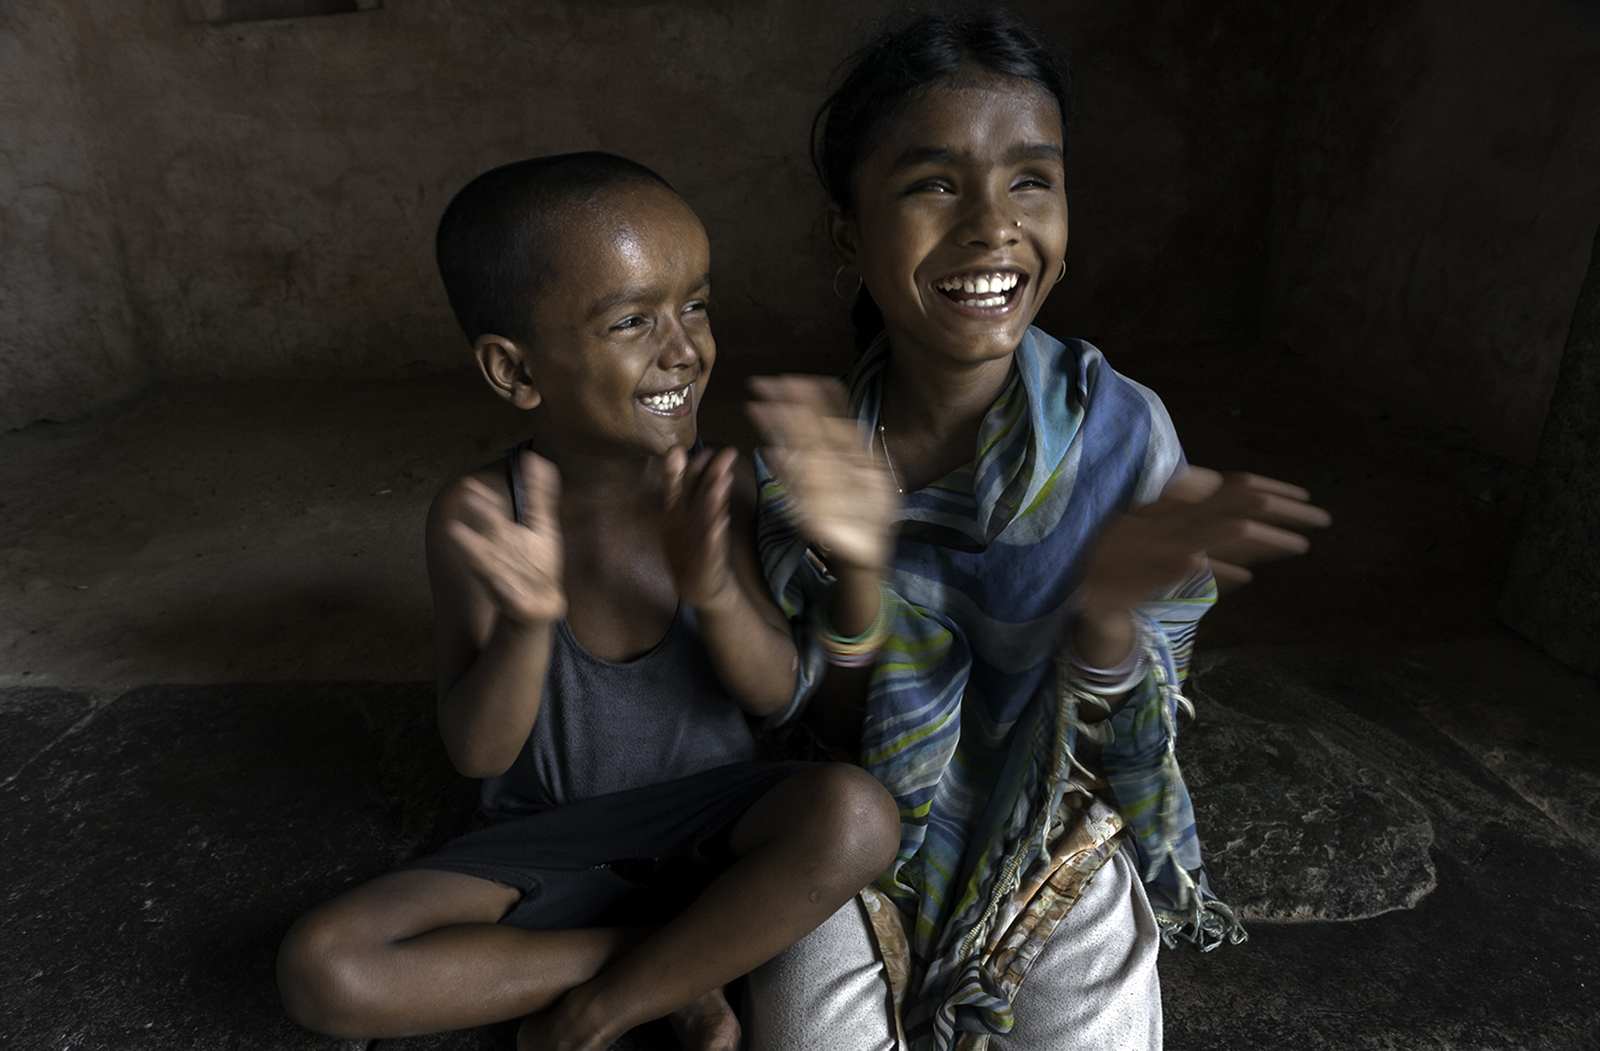 Hunupa Begum and her brother Hajimudin Sheikh, 6 resort to singing and clapping their hands to play and in the process make each other laugh. © Renée C. Byer